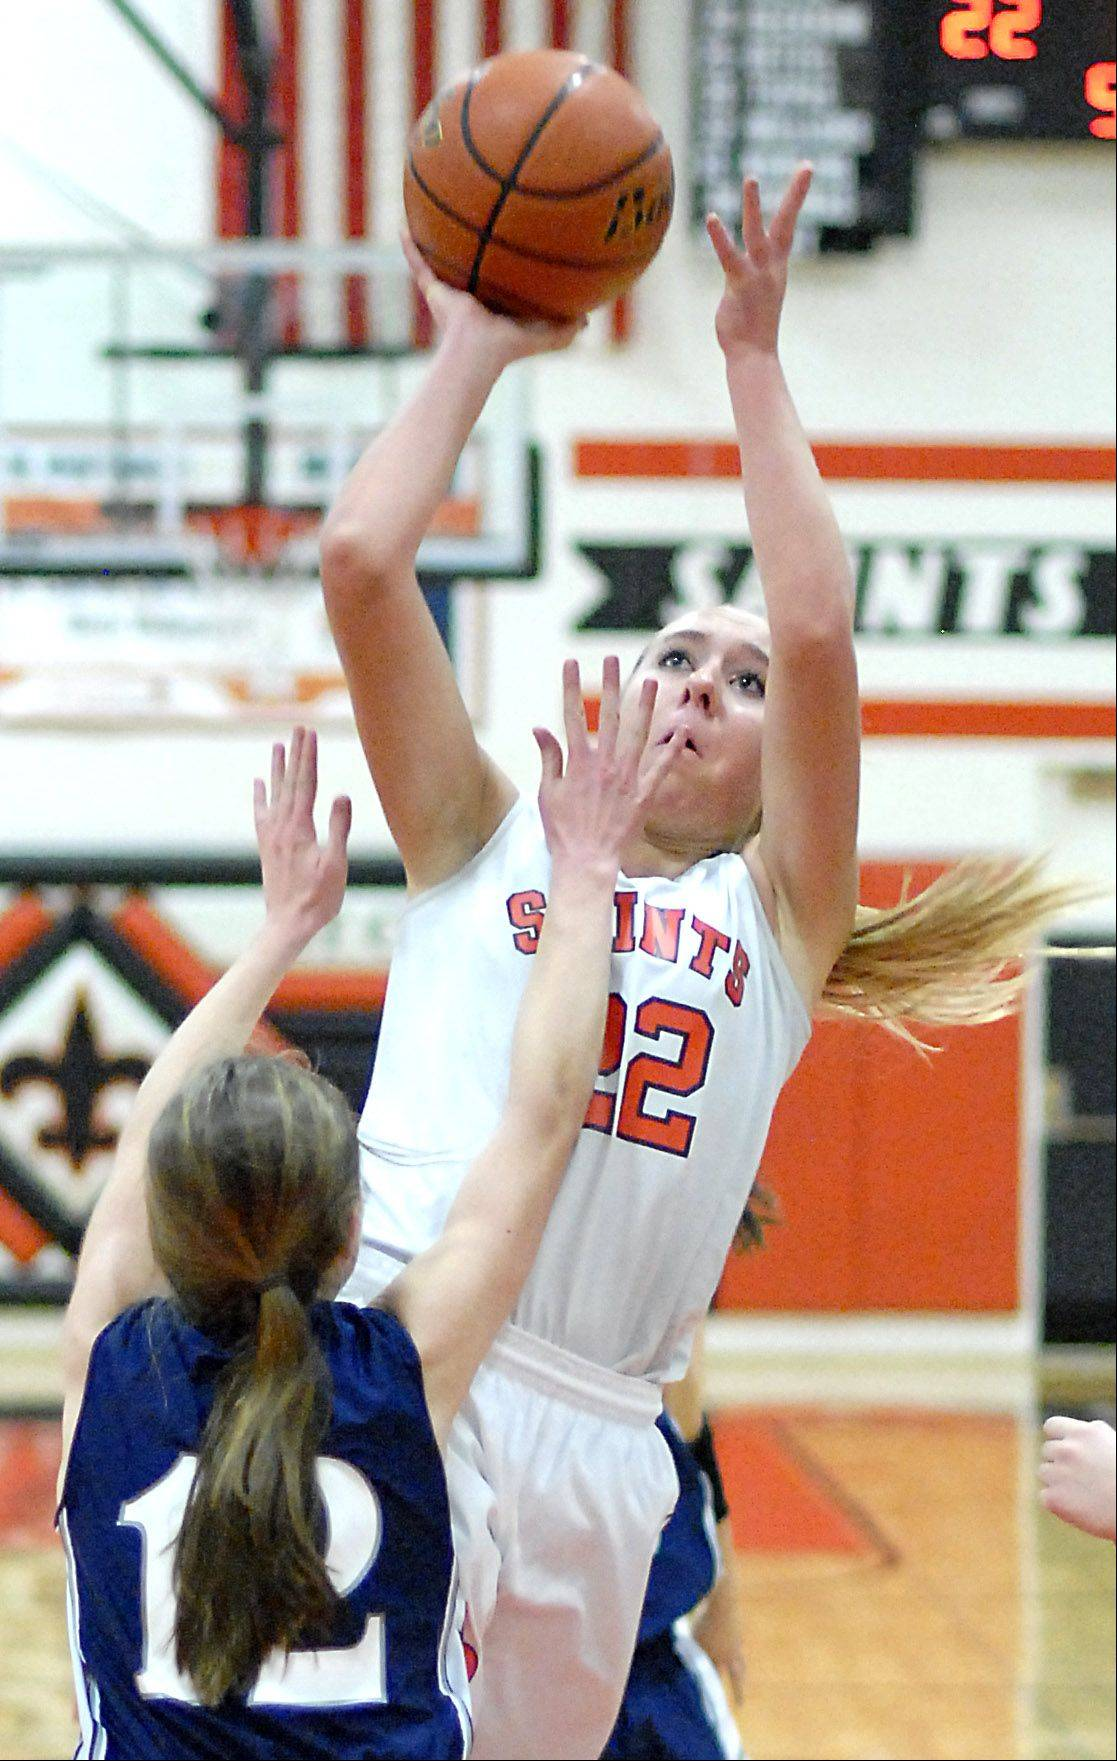 St. Charles East's Anna Bartels sinks a shot over West Chicago's Mae Elizabeth Gimre during Tuesday's game.